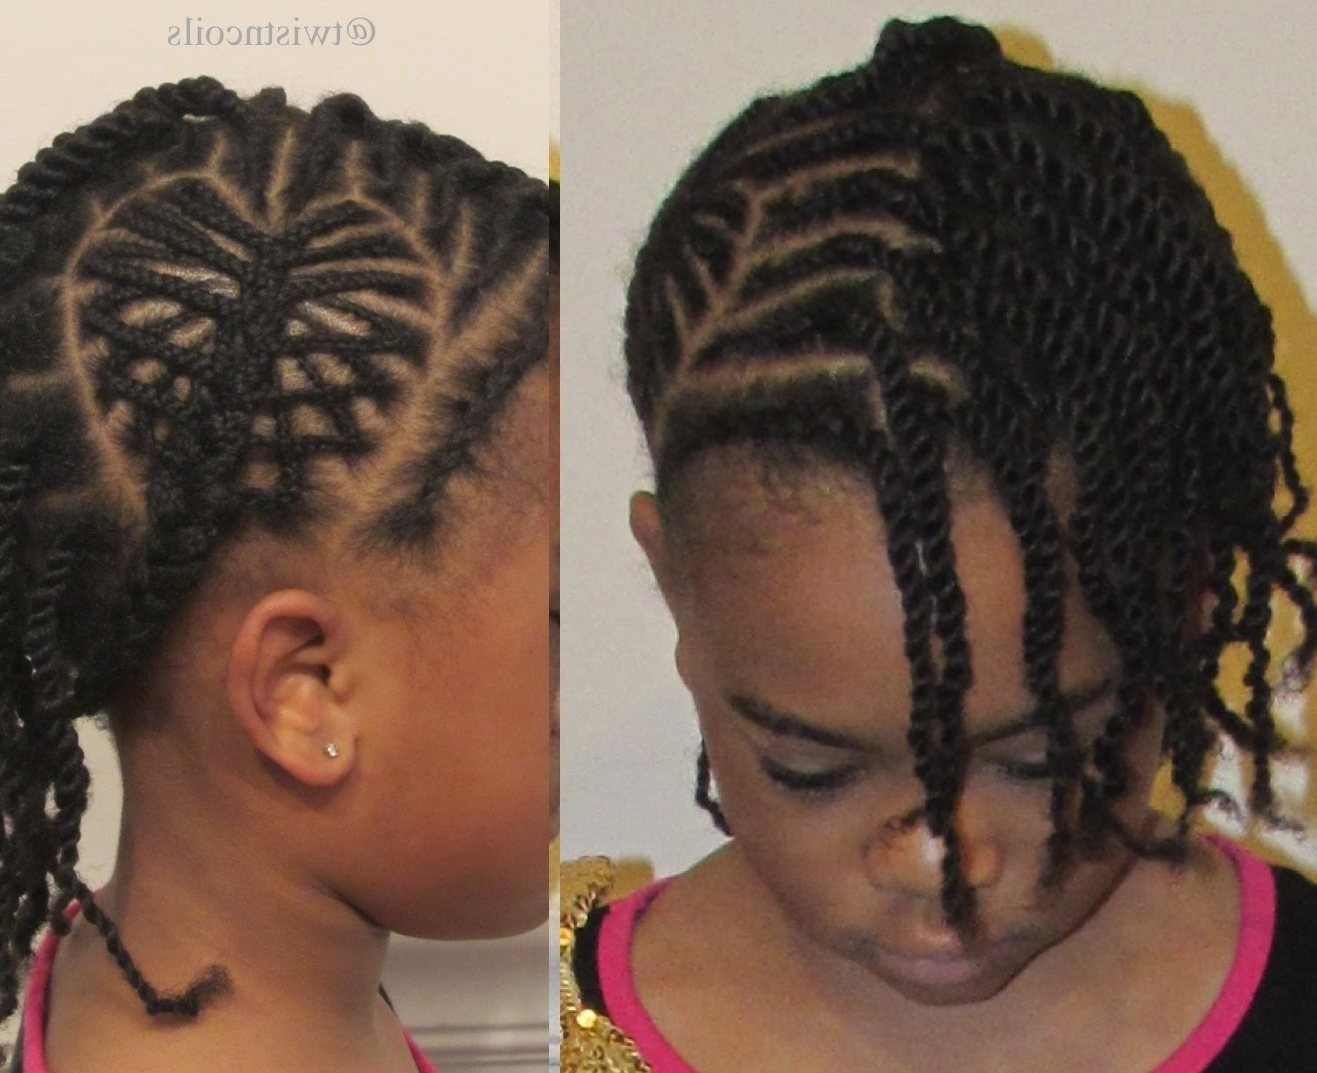 ♡ Tnc – 25 ♡ How To Do A 3 D Heart Braid ~ Fun Cute Hairstyles For With Most Popular Heart Braided Hairstyles (View 1 of 15)